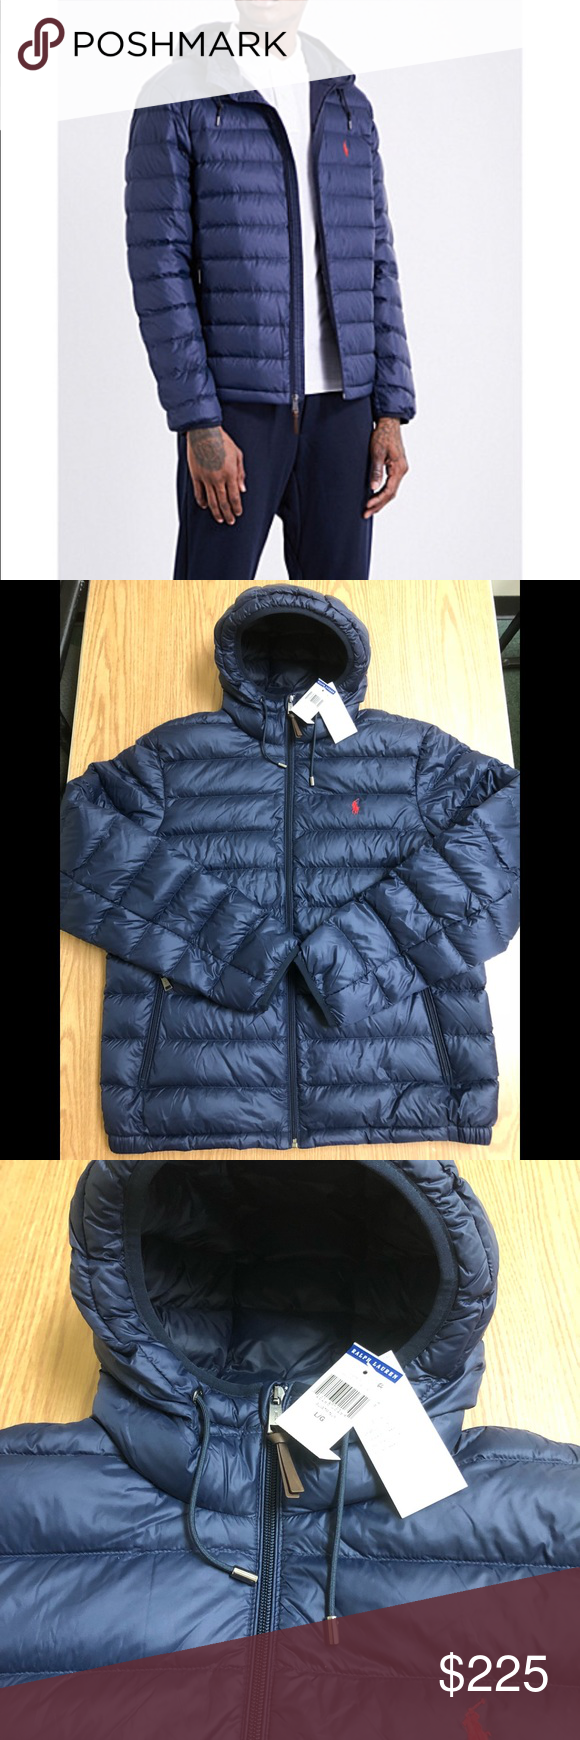 Polo Aviator Navy Packable Hooded Down Jacket Down Coat Jacket Brands Clothes Design [ 1740 x 580 Pixel ]